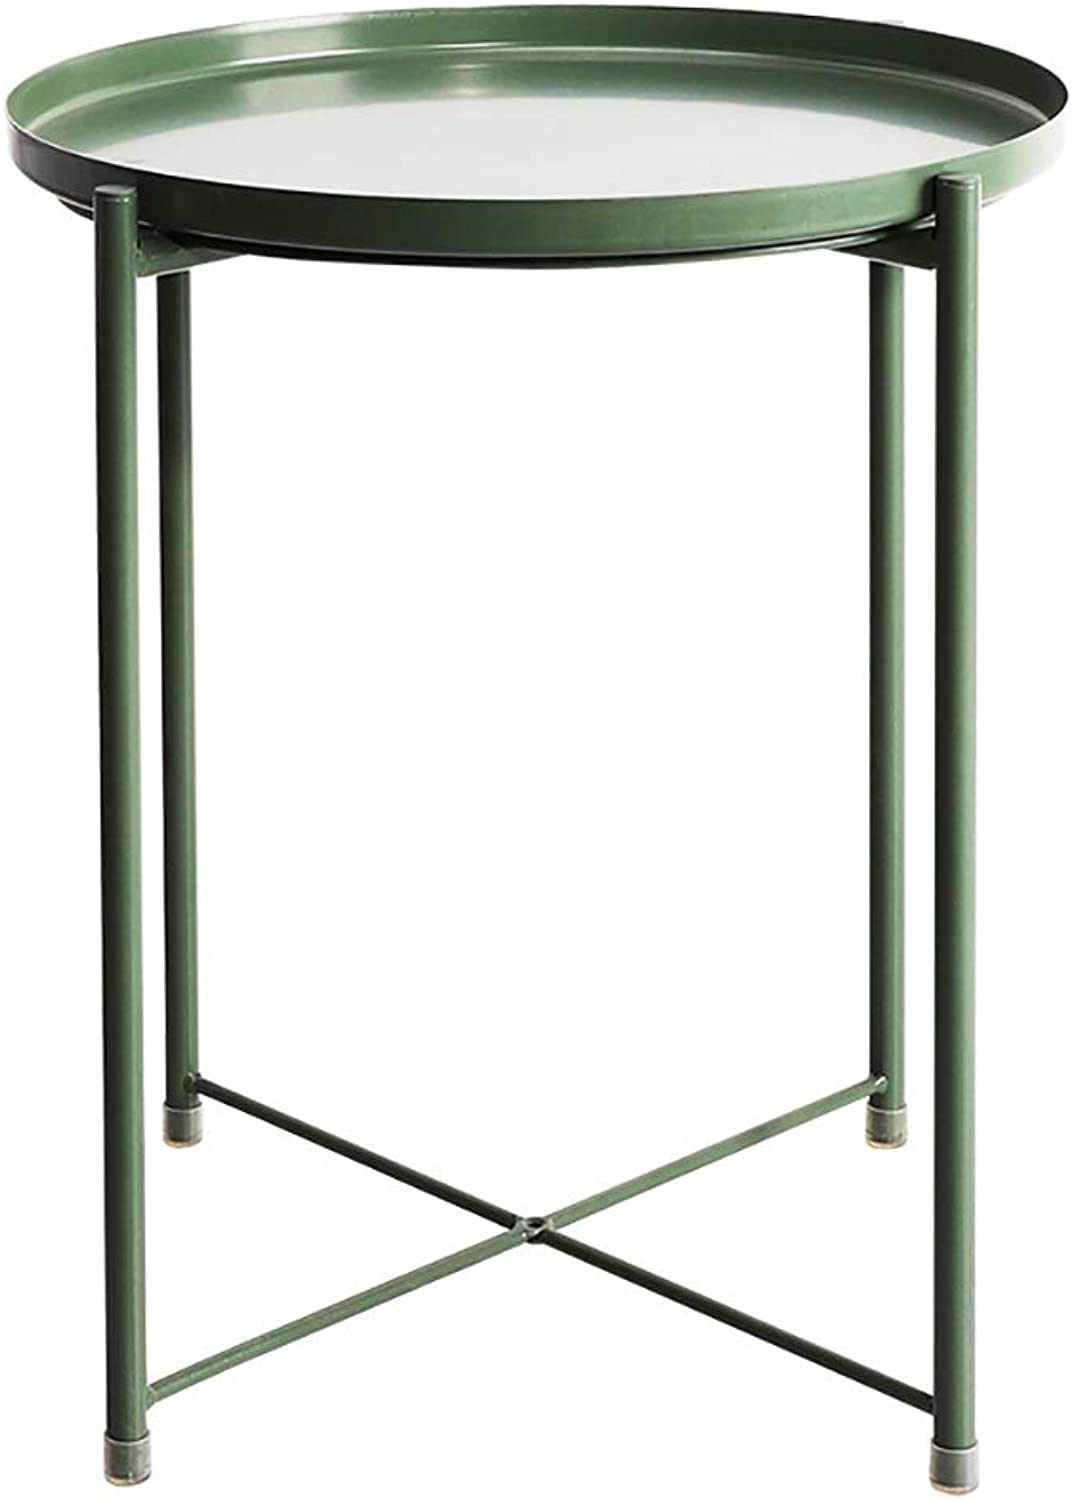 Bedside Table Wrought Iron Round Living Room Sofa Parlor Round Side Table Bedside (color   B)